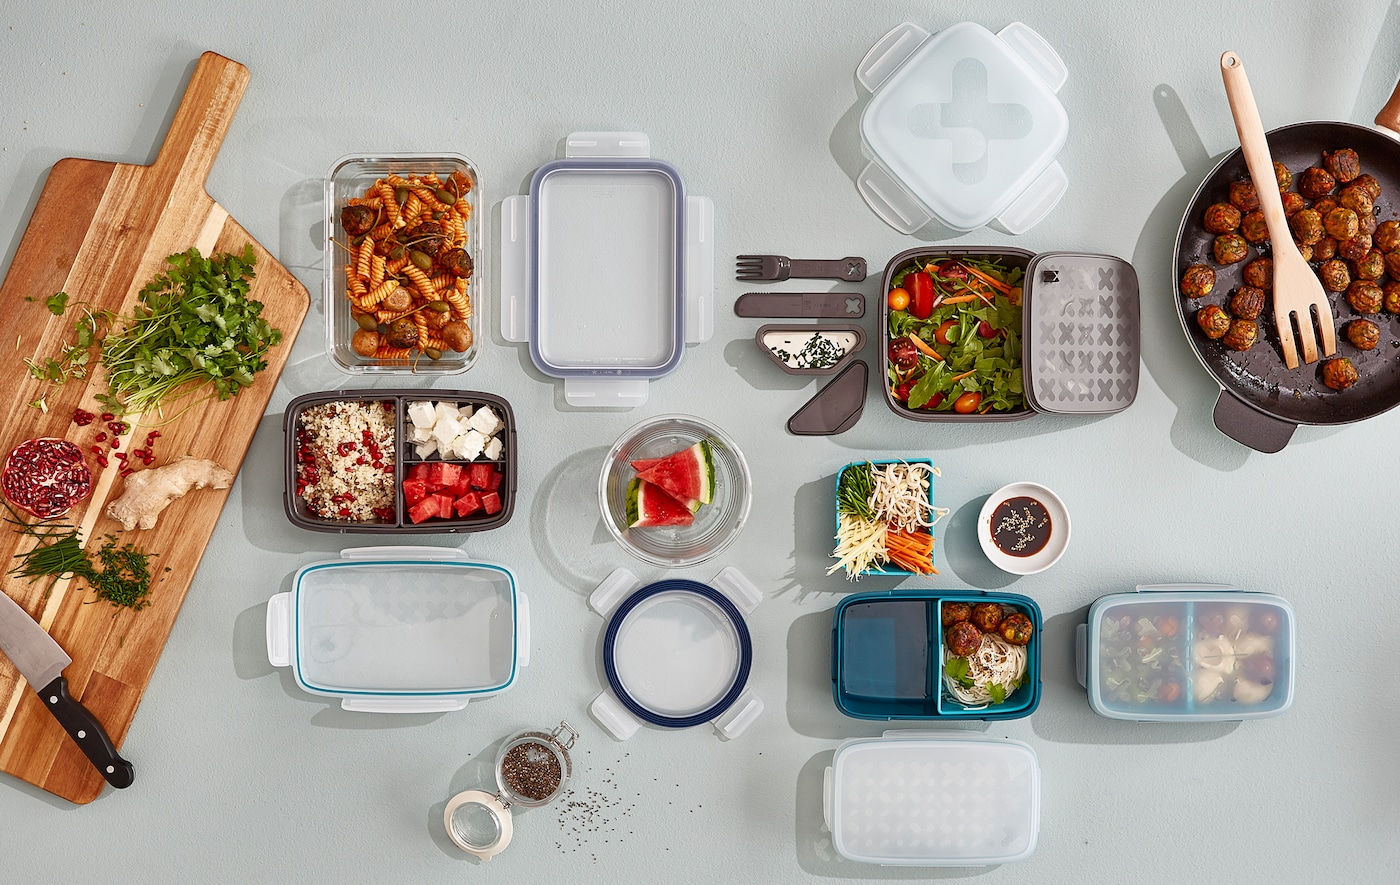 Bring a lunch box and save money, time and food. IKEA has many to choose from like FESTMÅLTID plastic lunch box in grey that has two removable inserts to separate foods. There are lunch boxes for salads and oven prep, too.